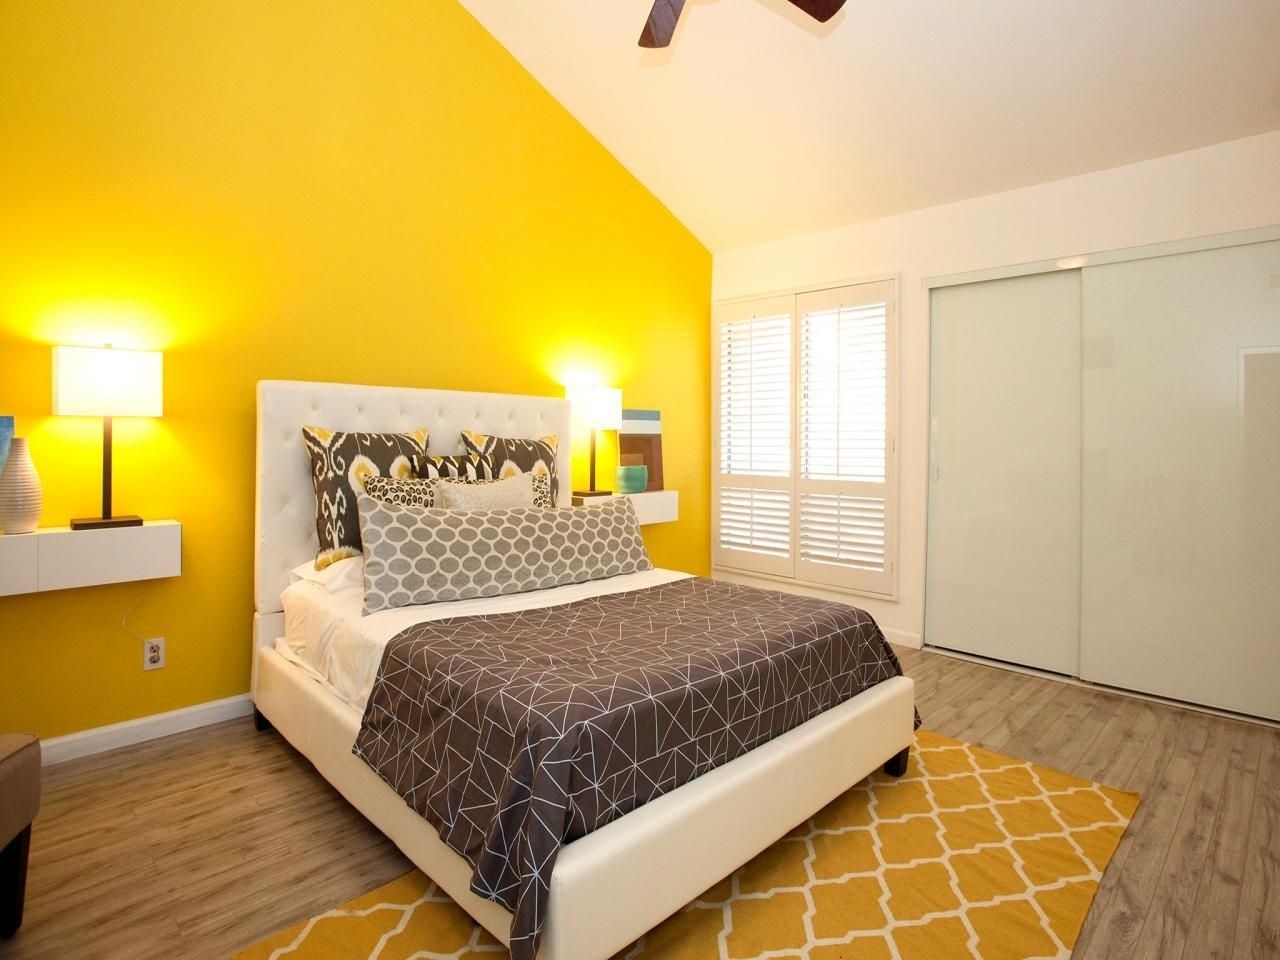 14 Living Room And Bedroom Makeovers From House Hunters Renovation In Most Popular Wall Accents For Yellow Room (View 1 of 15)